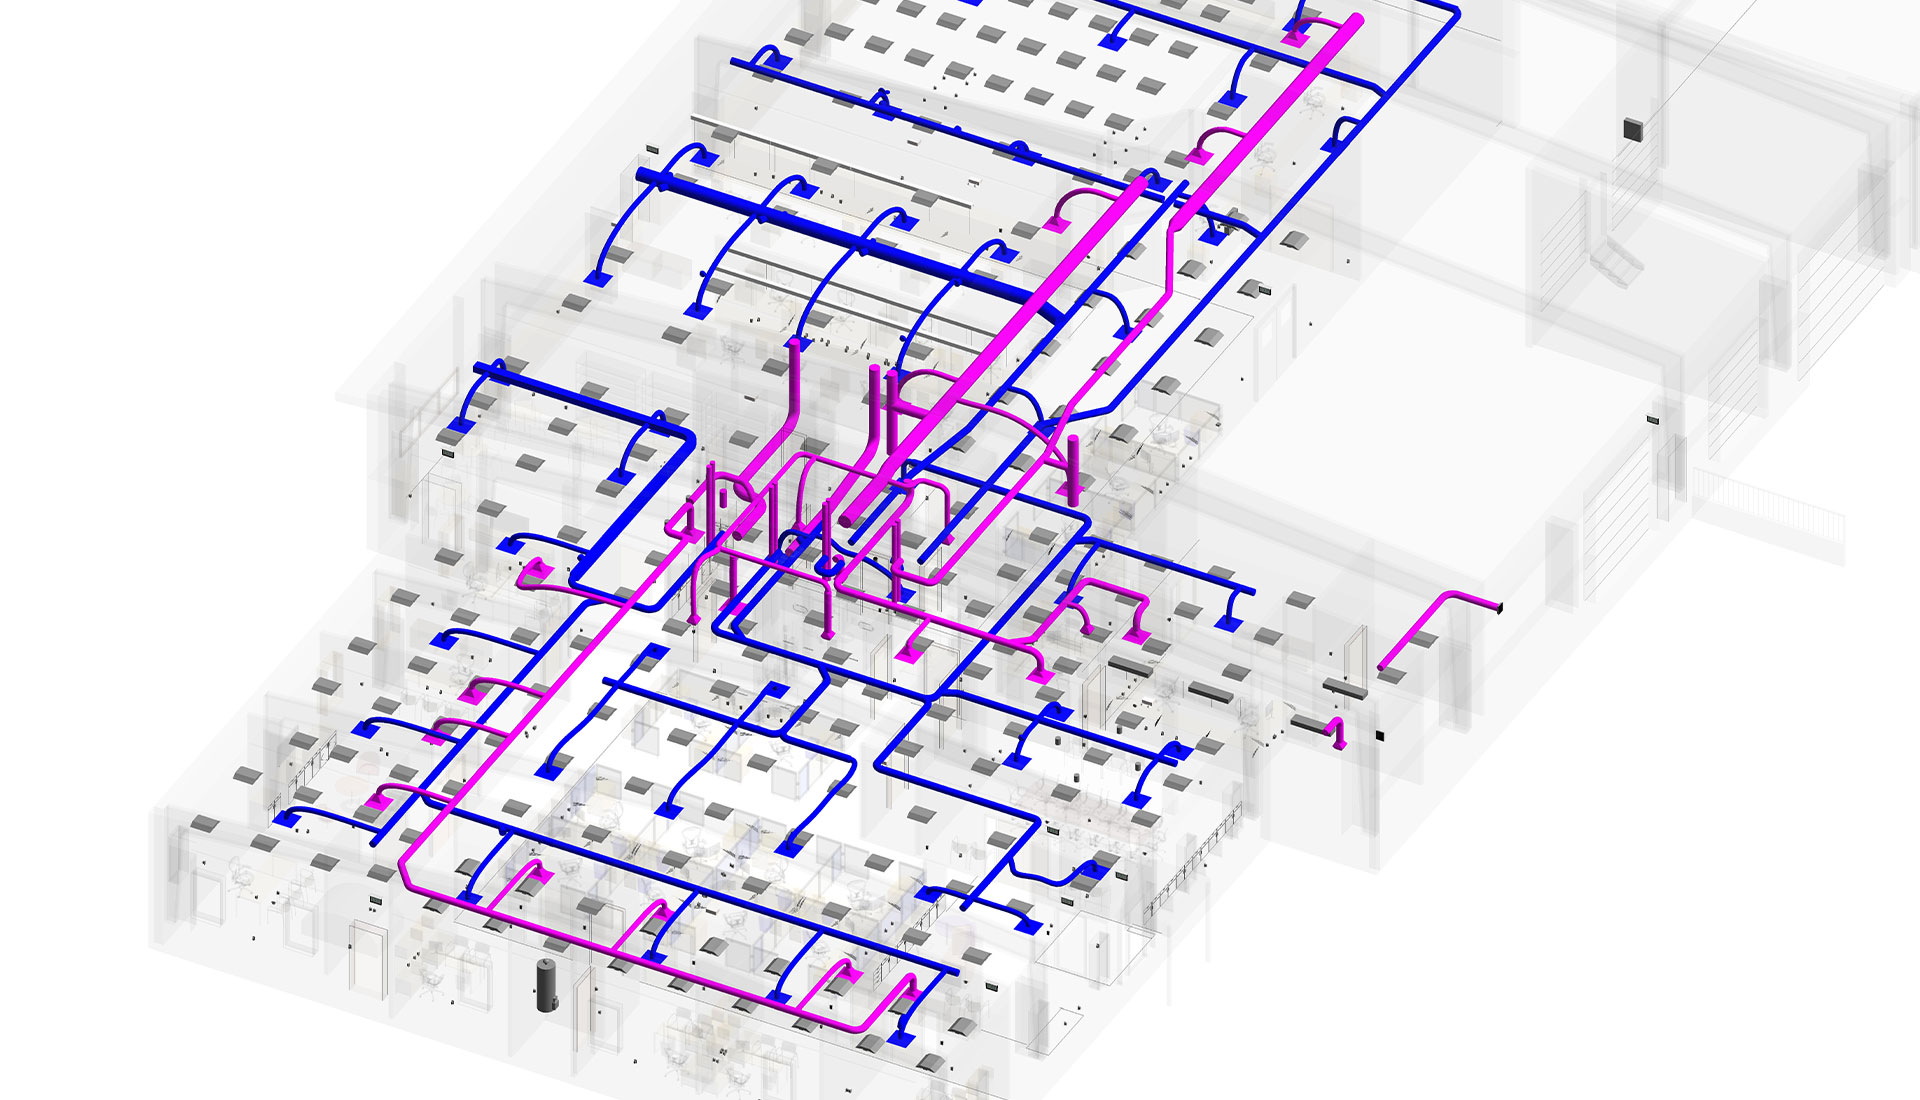 HVAC-Ducting_Industrial-Project_Alloy-Specialities_BIM-Modeling-by-United-BIM